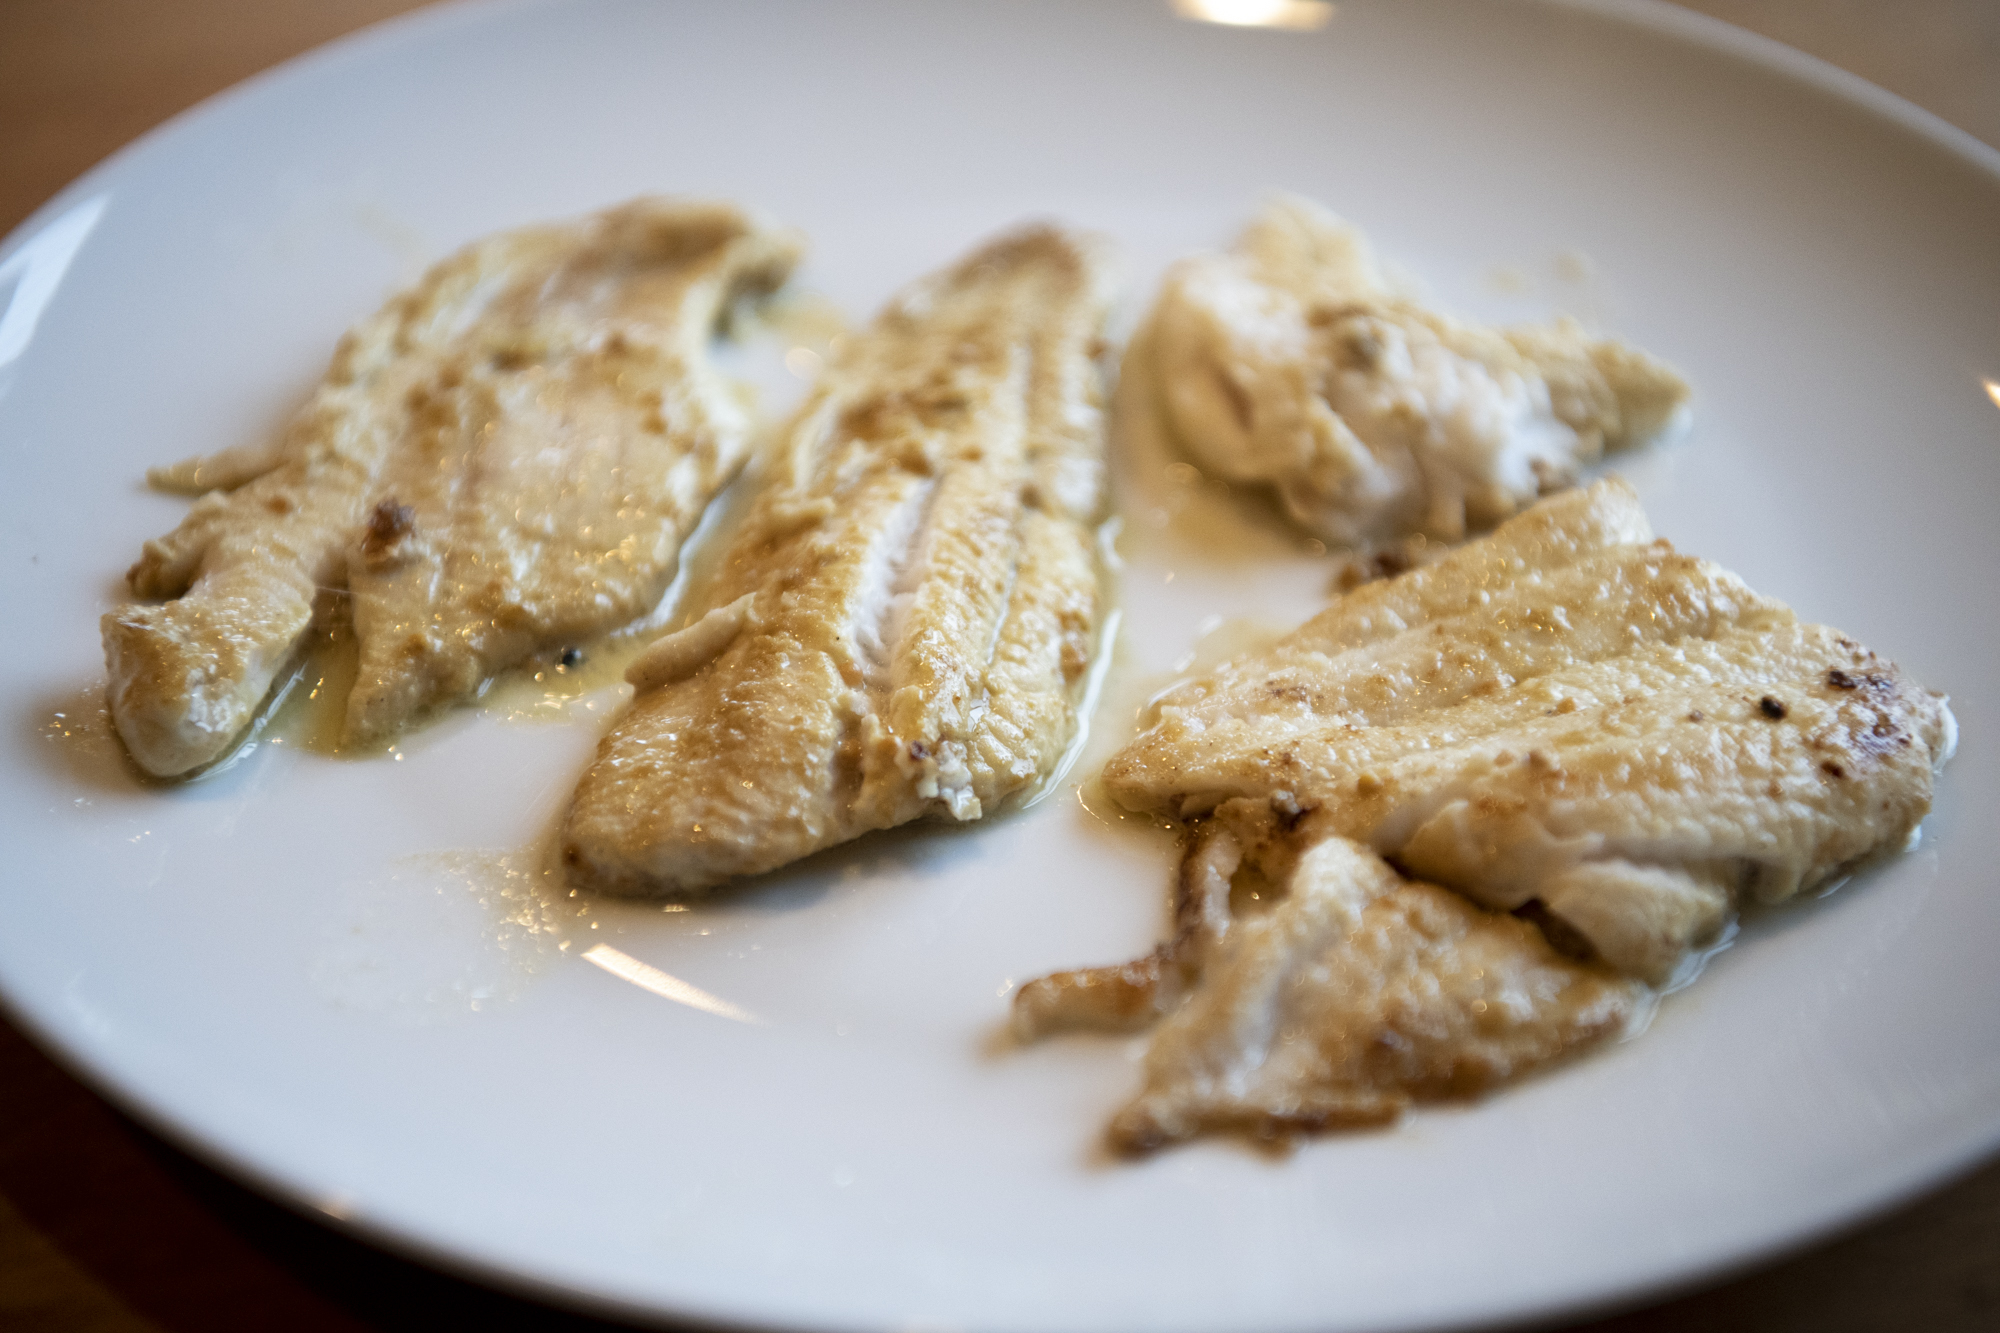 Pan-fried Dover (Pacific) sole